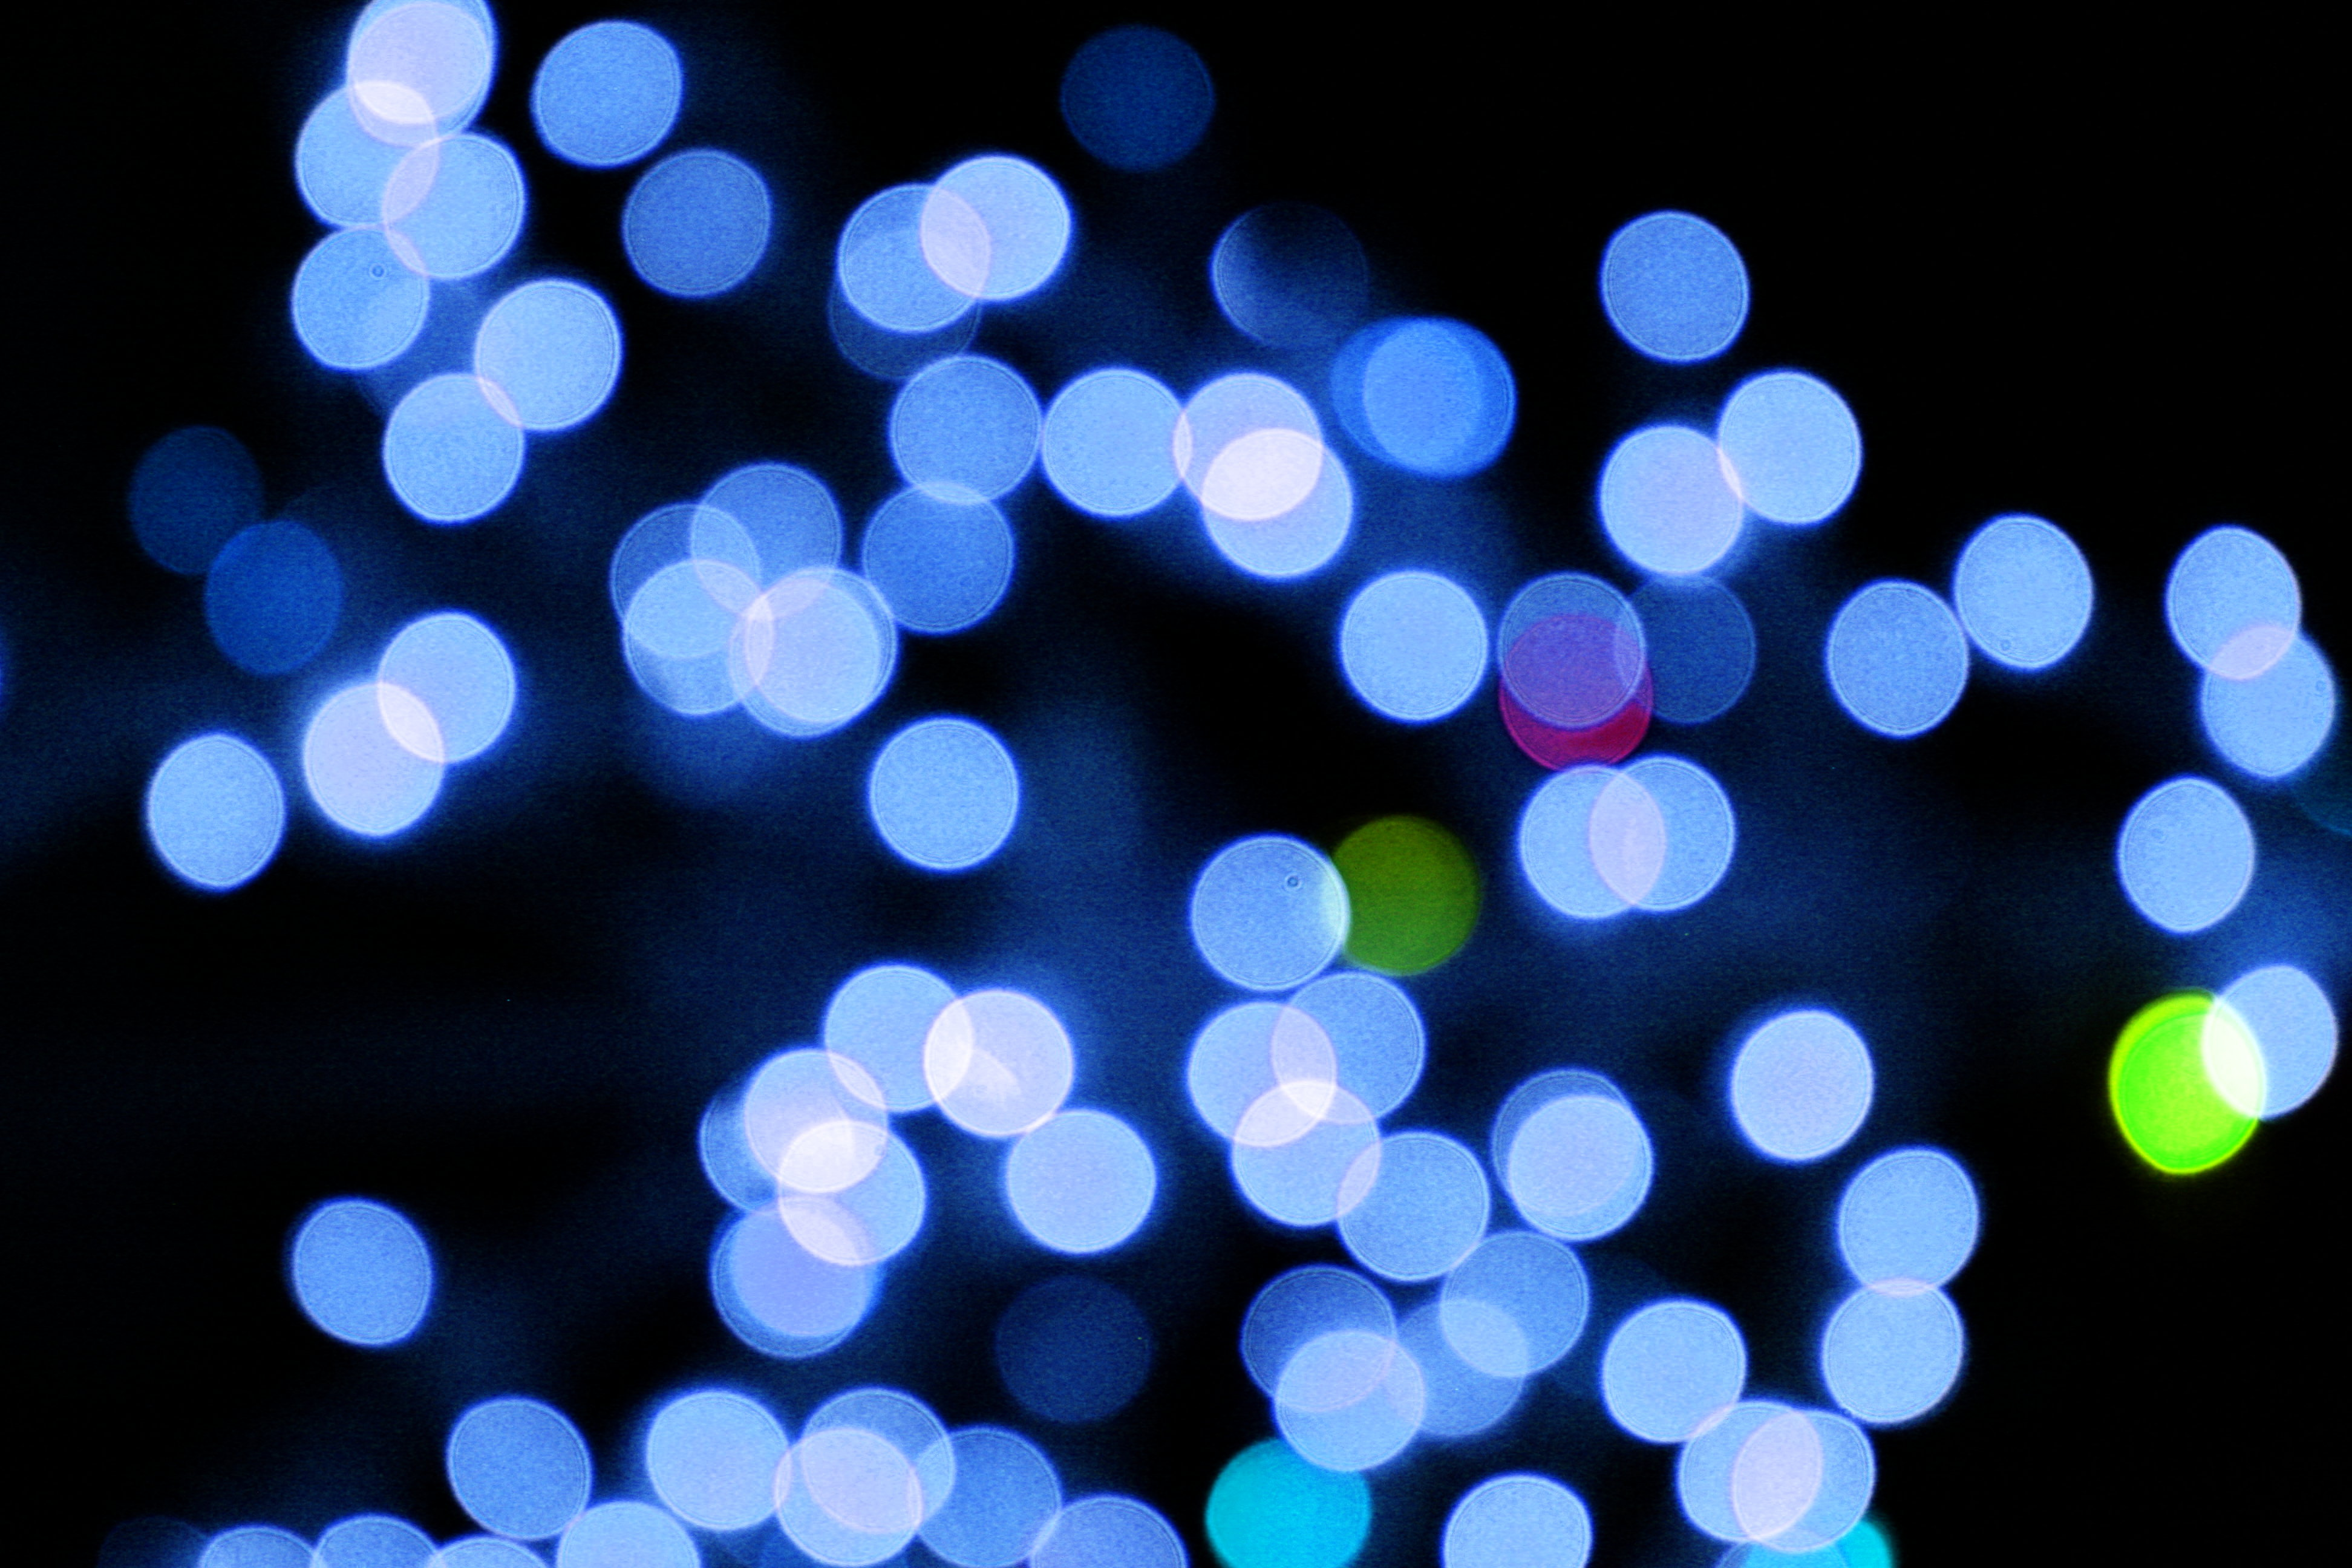 competitive price 1320a 7409c Blurred Christmas Lights Blue Picture | Free Photograph ...